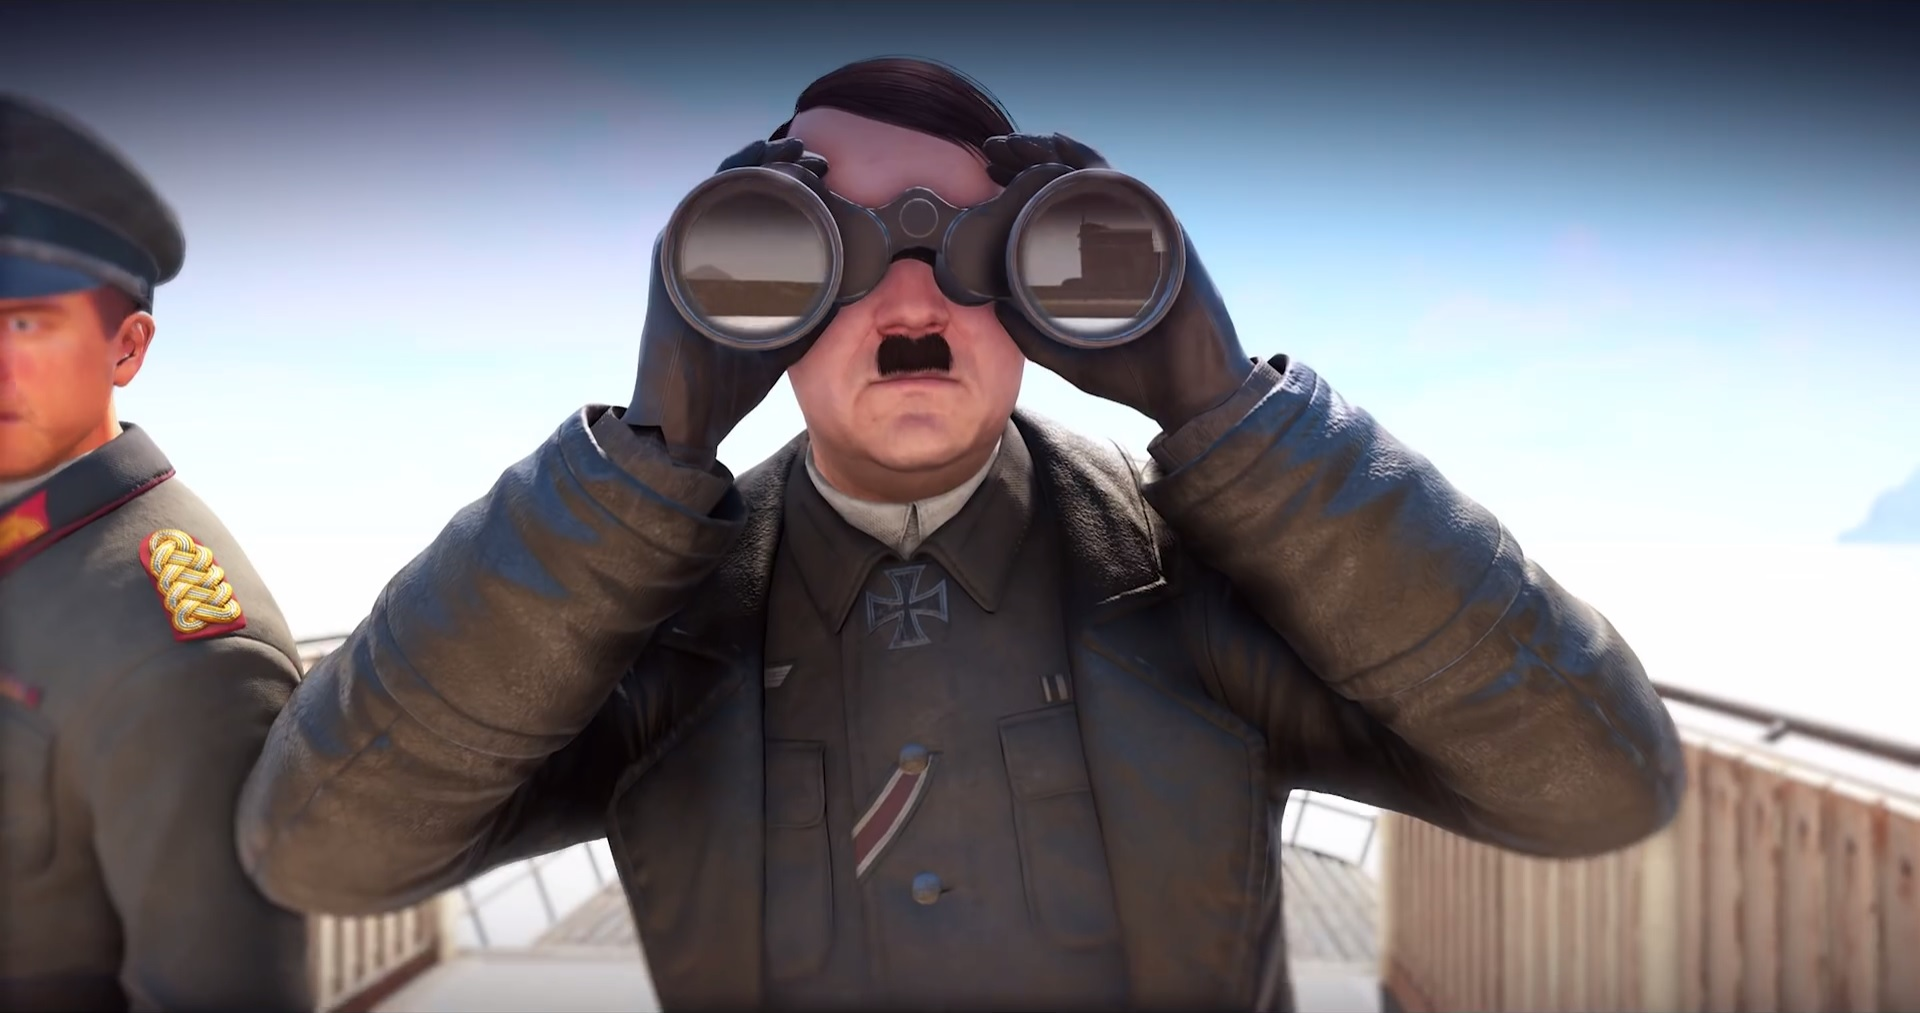 Sniper Elite 4 gameplay trailer